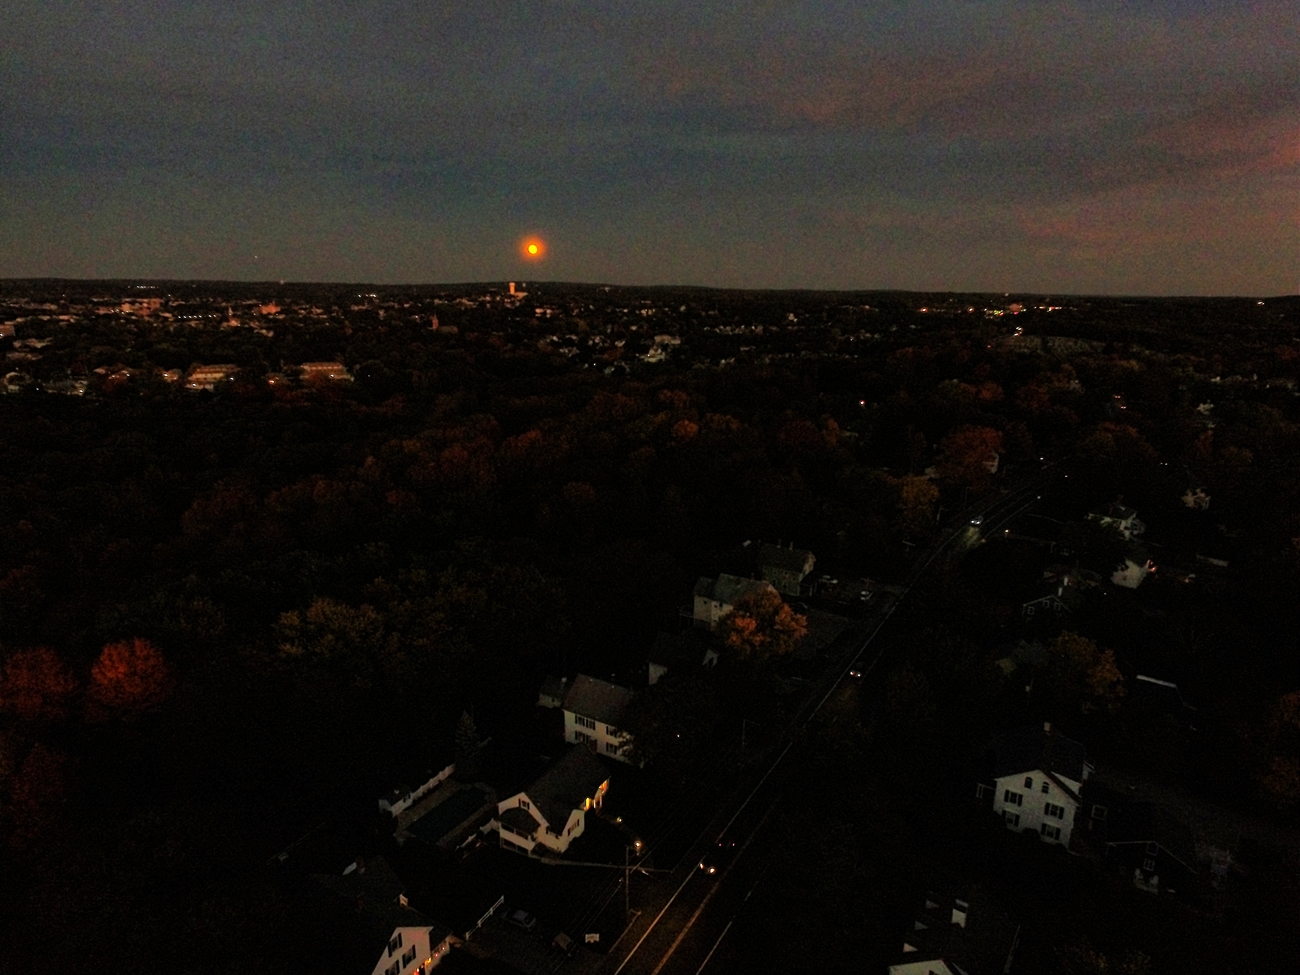 Eye of the Drone - Moon Rise over New England by Ragtopjohnny